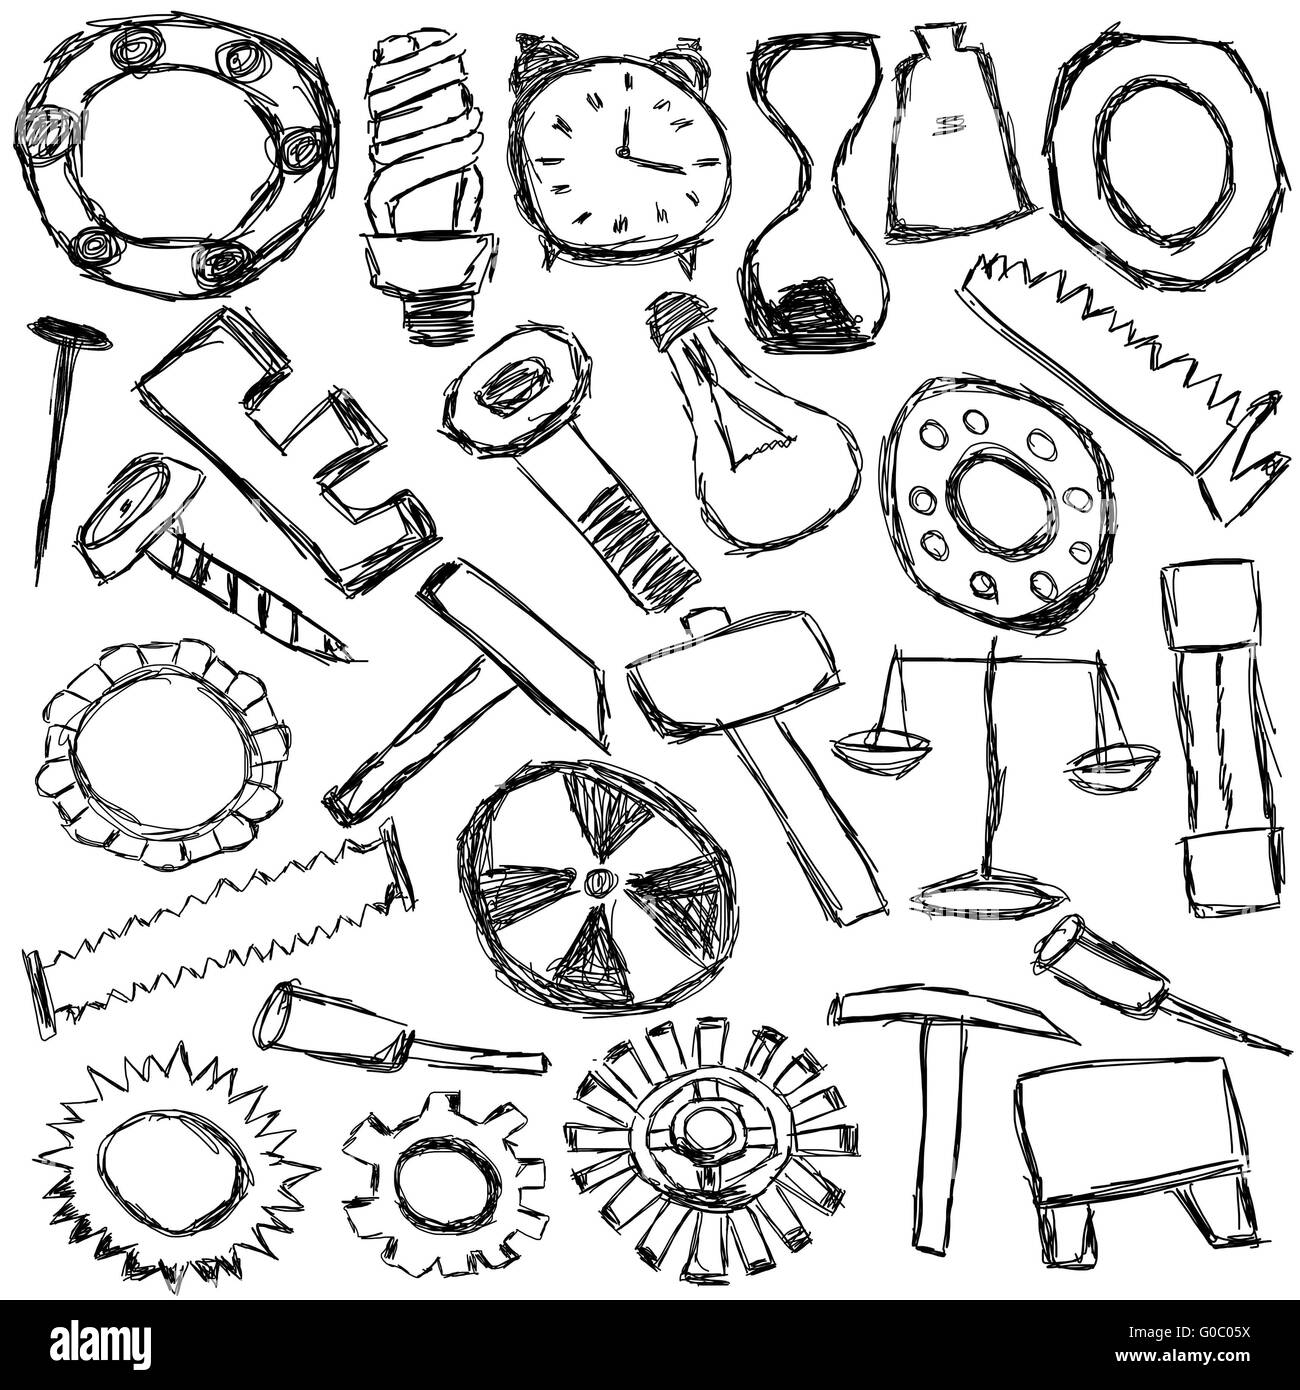 Uncategorized Kids Drawing Tools set of mechanical spare parts and tools kids drawing stock photo drawing